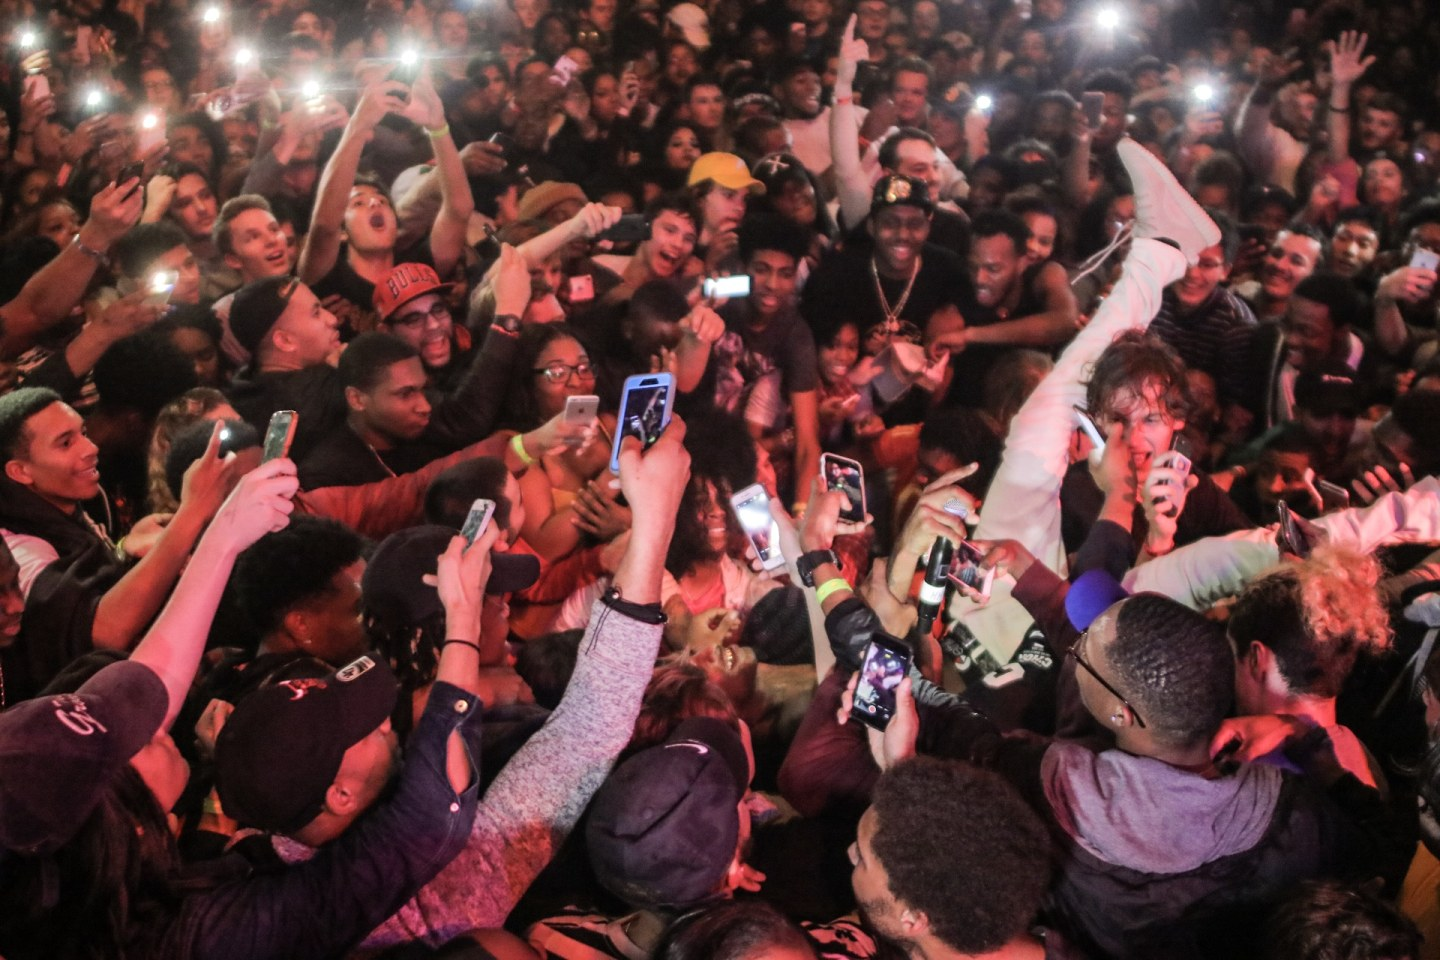 What It's Like To Be On Tour With 21 Savage And Young Thug